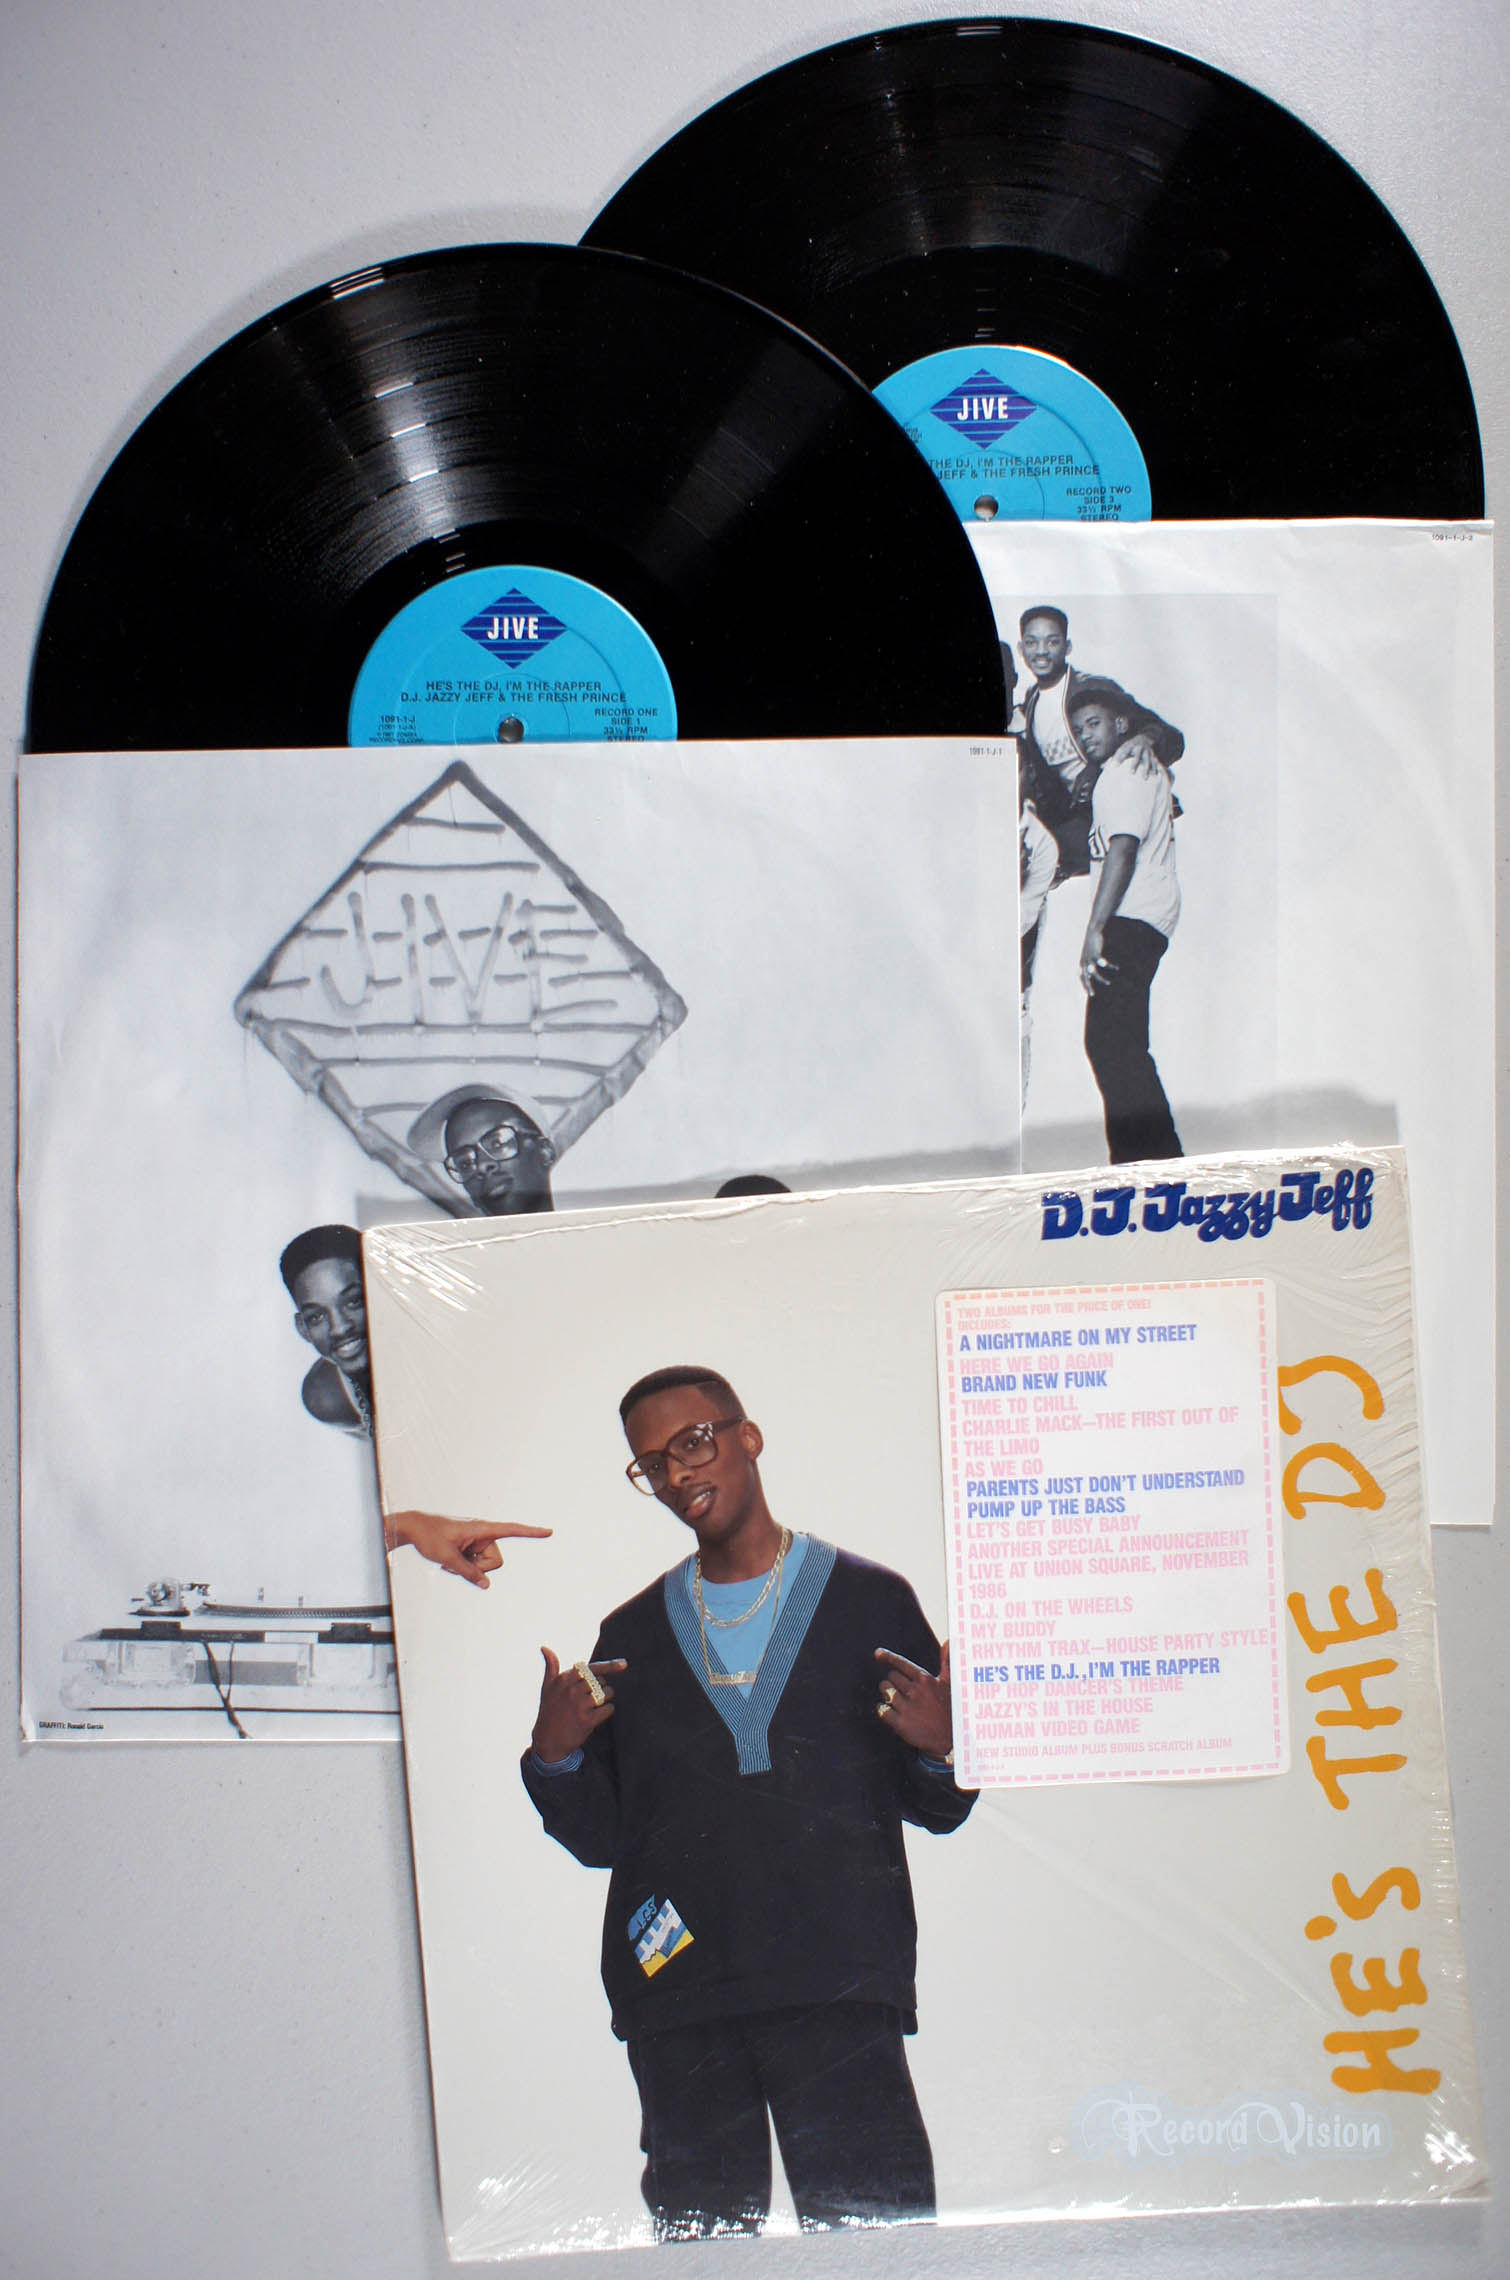 DJ JAZZY JEFF AND THE FRESH PRINCE - He's the DJ, I'm the Rapper - LP x 2